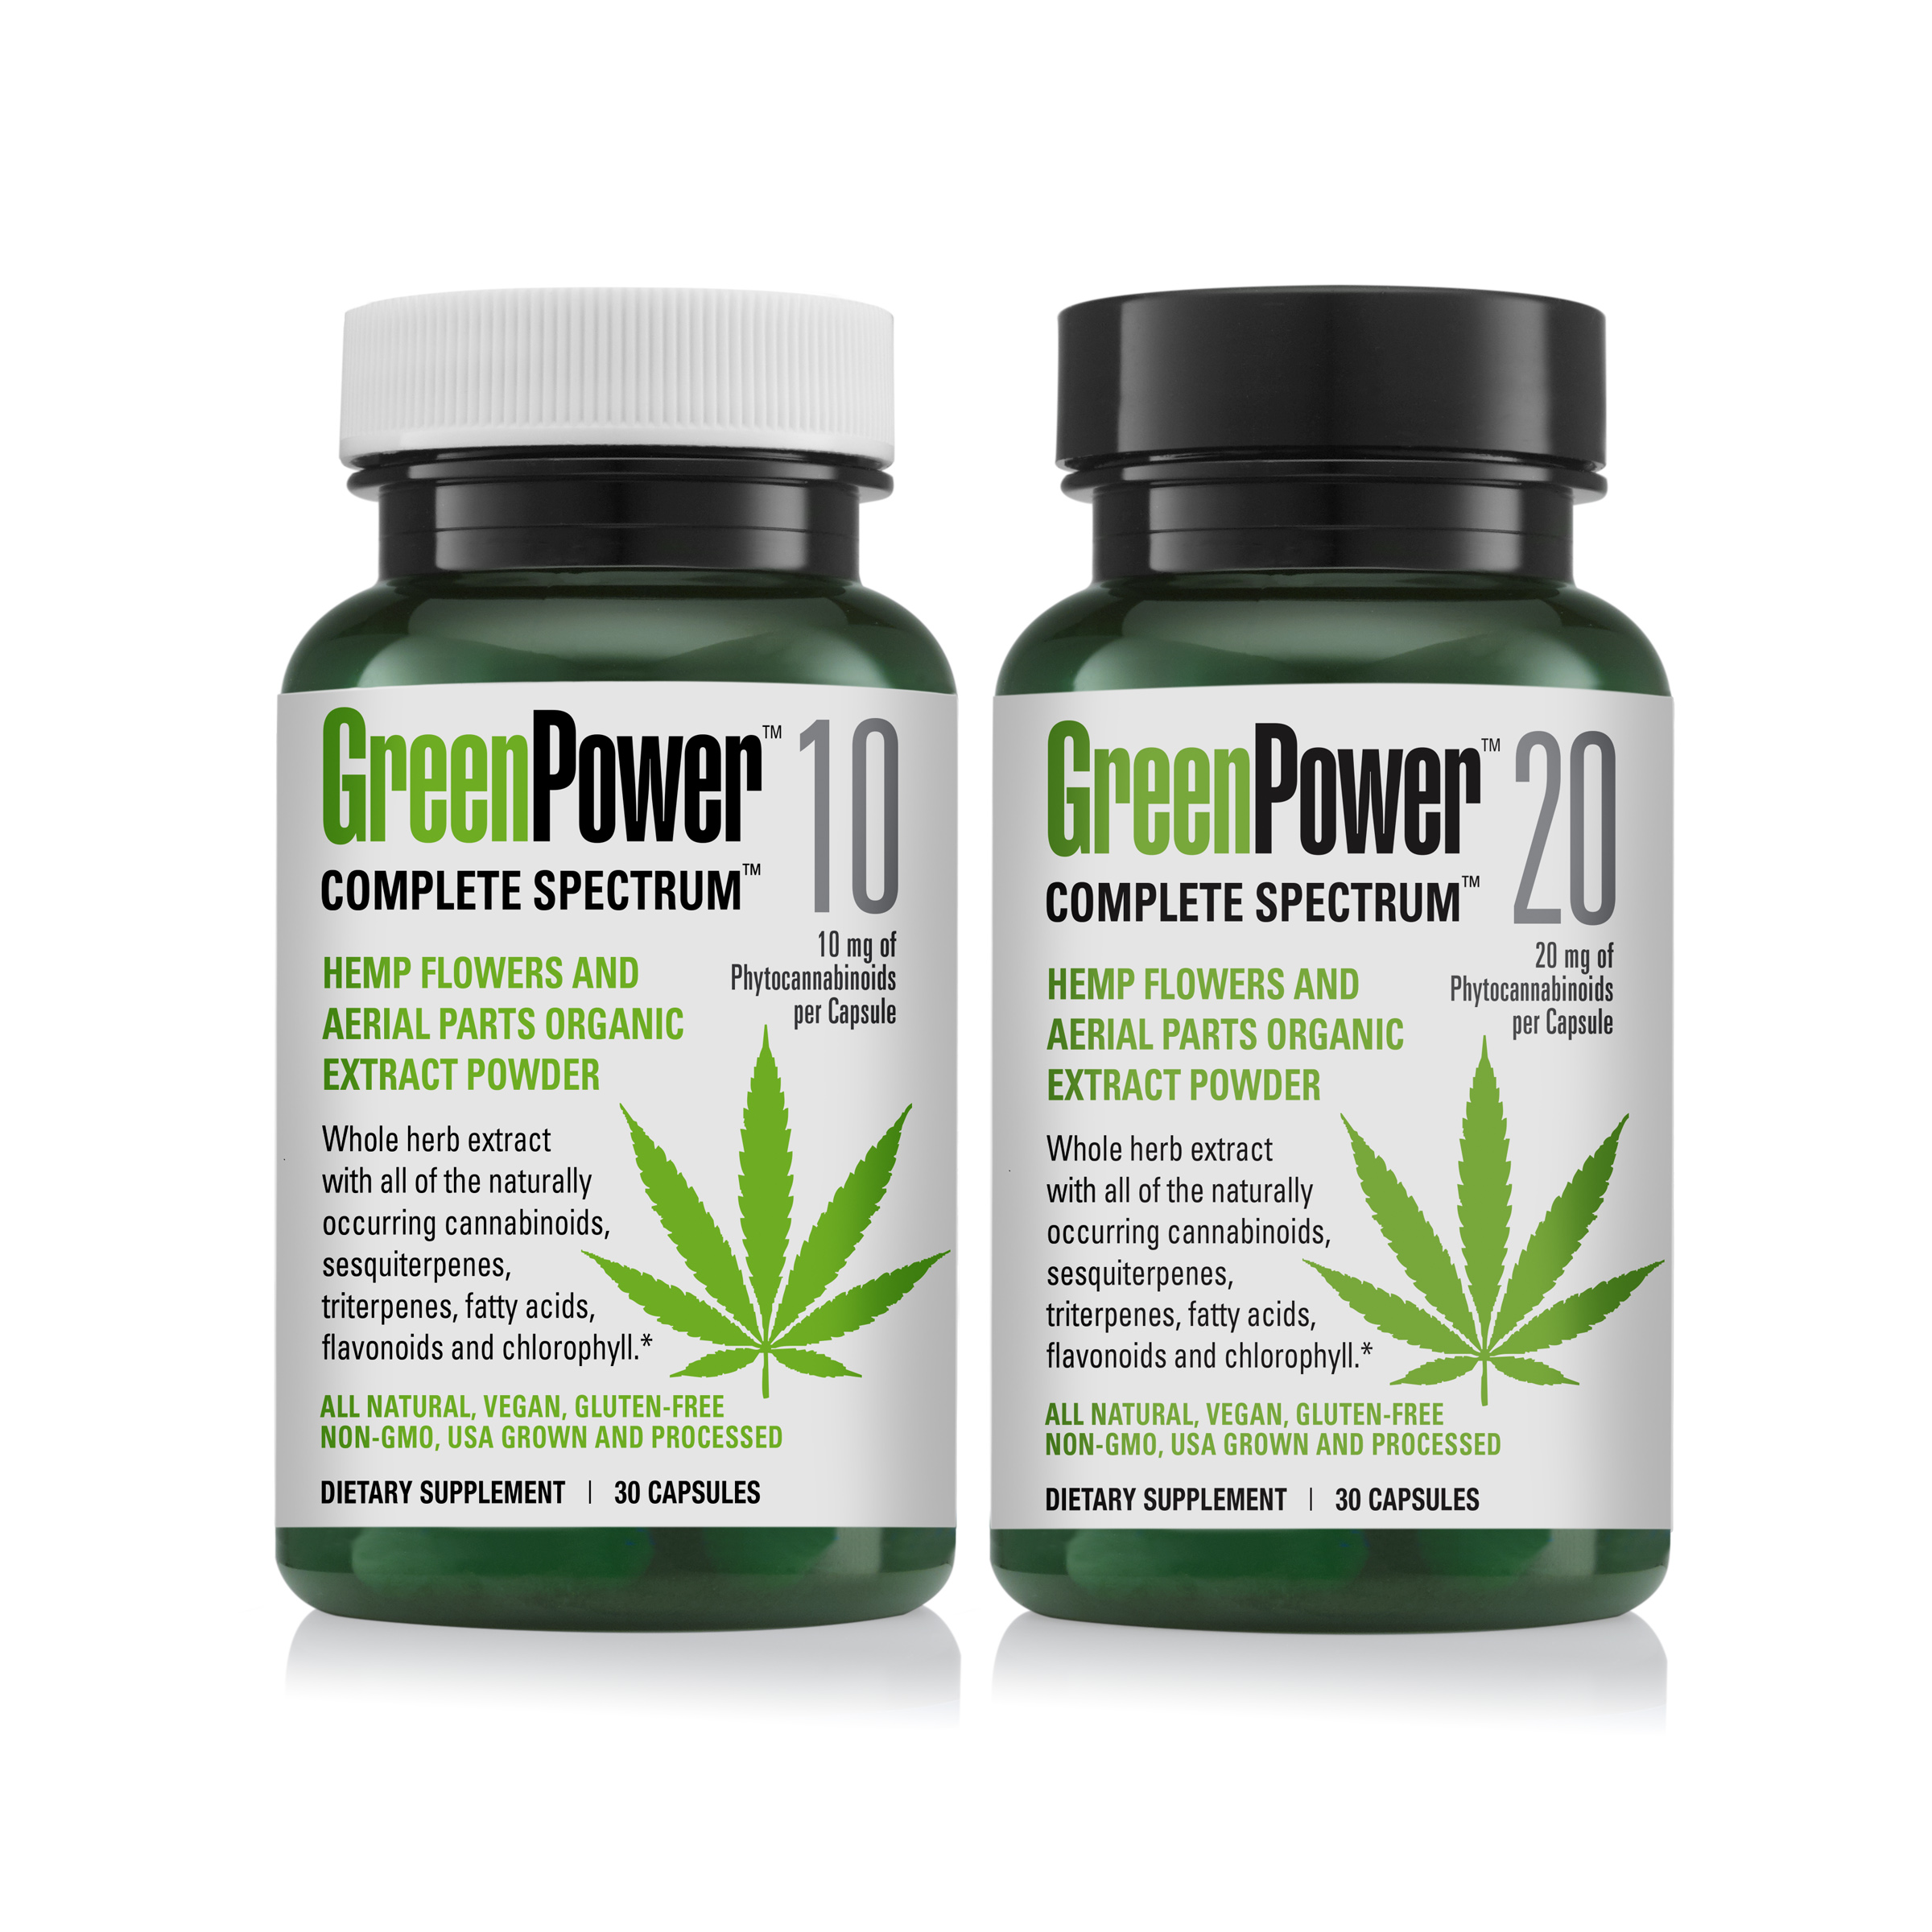 guide to GreenPower 10 and 20 bottles